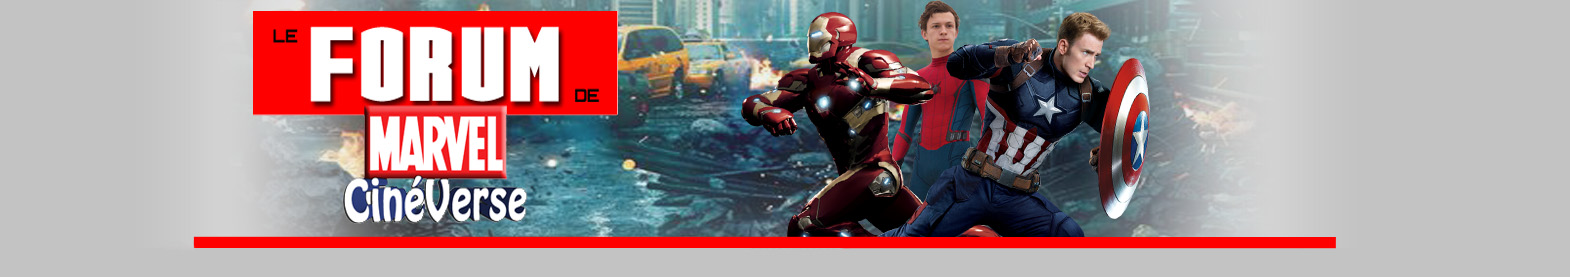 Marvel CinéVerse FORUM Index du Forum